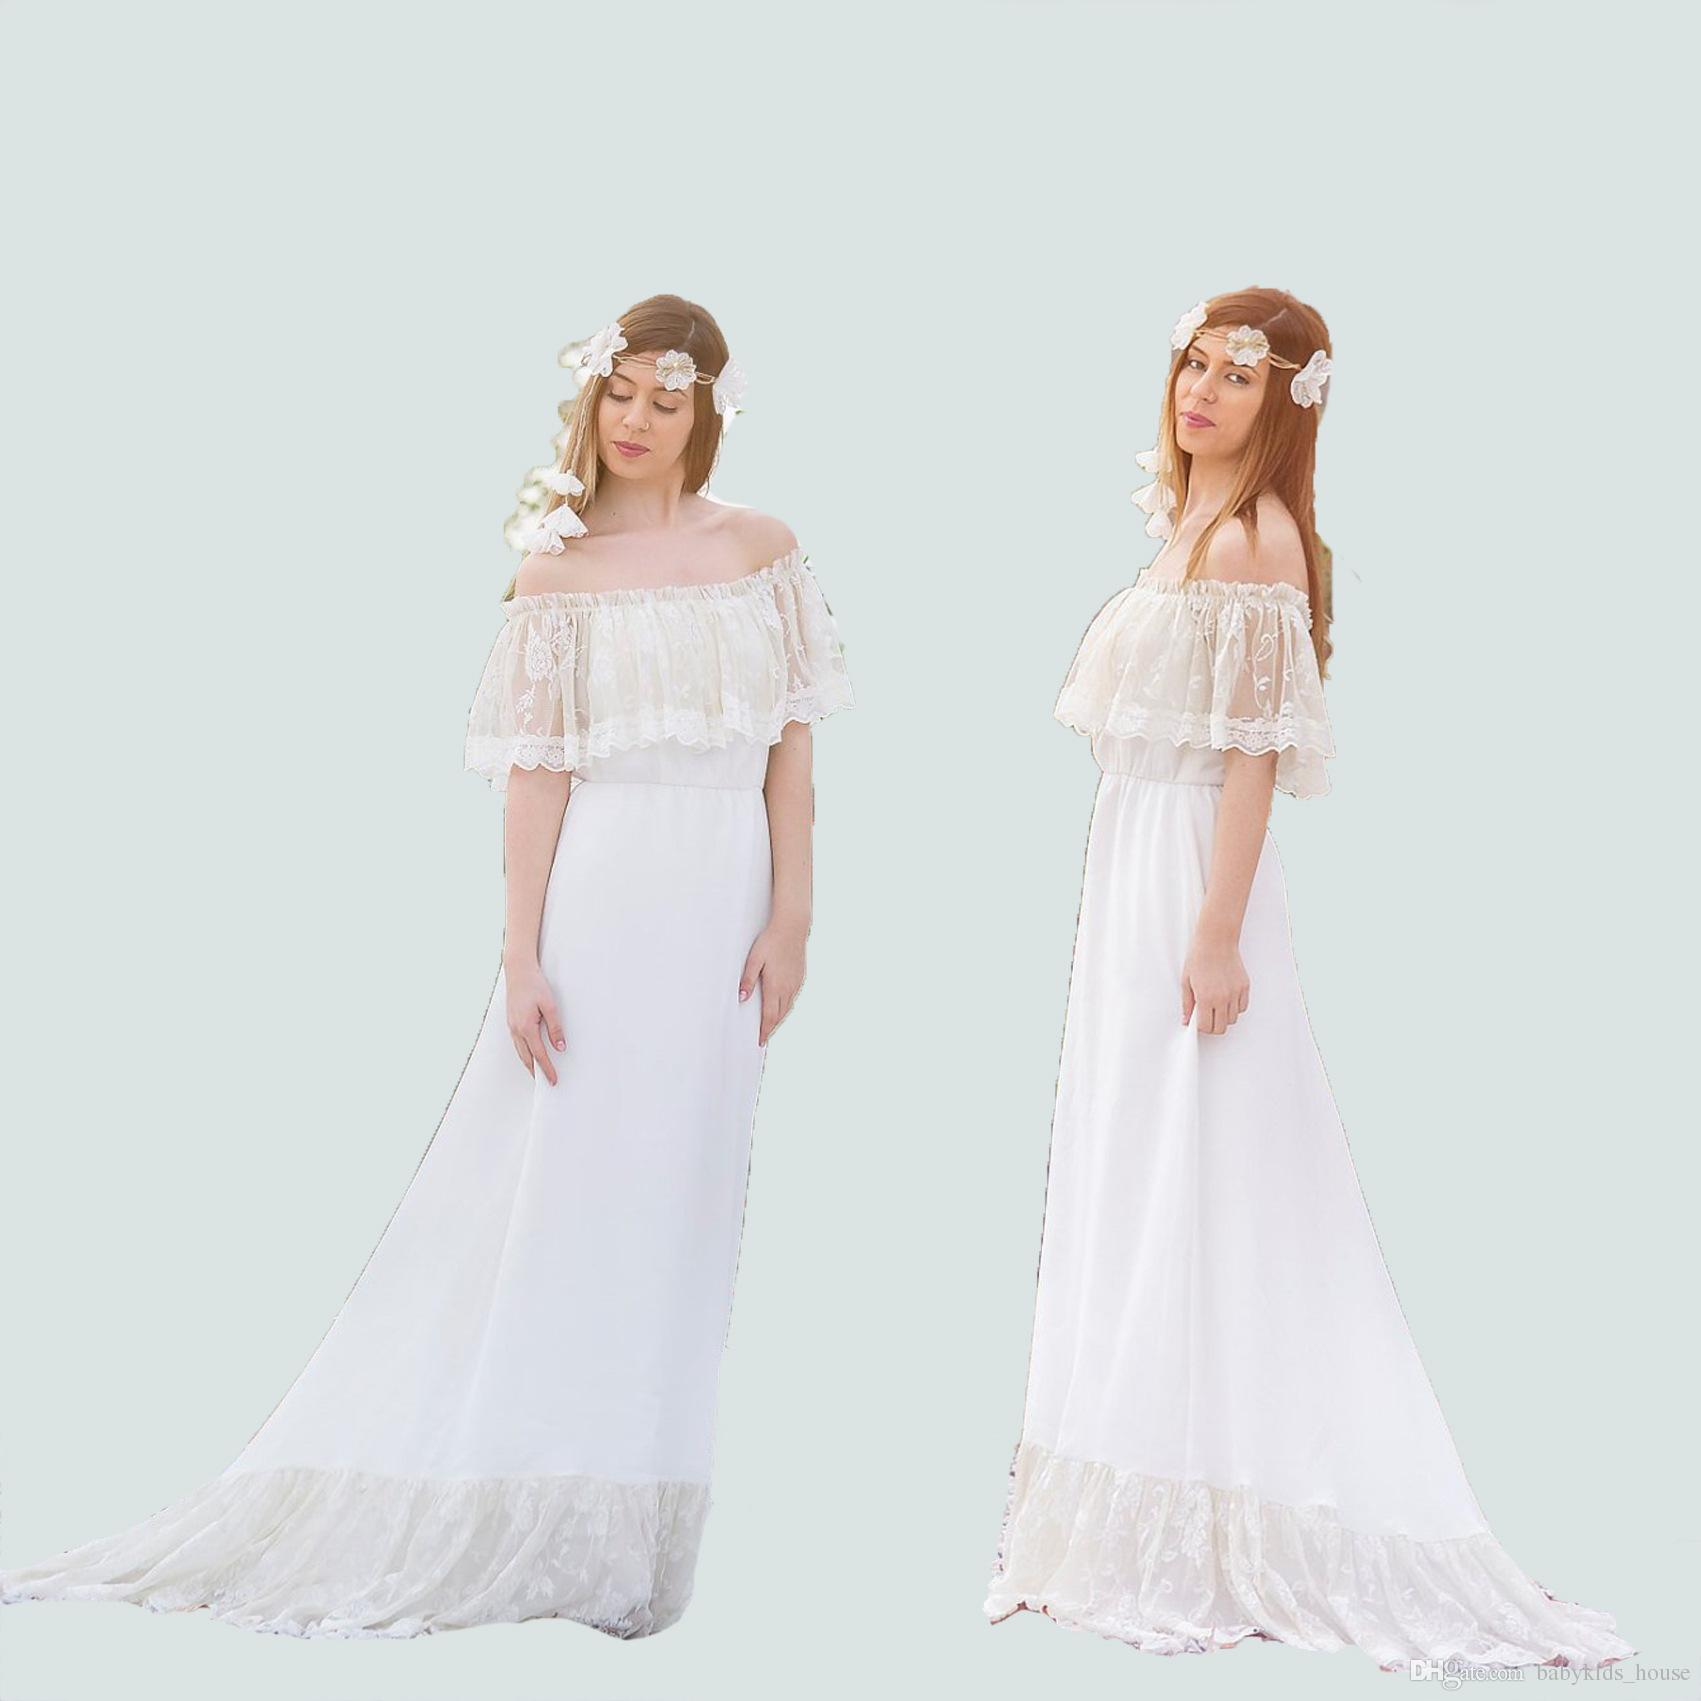 420be3f76bf50 2019 Fancy Maternity Gown Pregnant Dress Fashion White Maternity  Photography Props Maxi Long Lace Dress Photo Session Dresses From  Babykids_house, ...